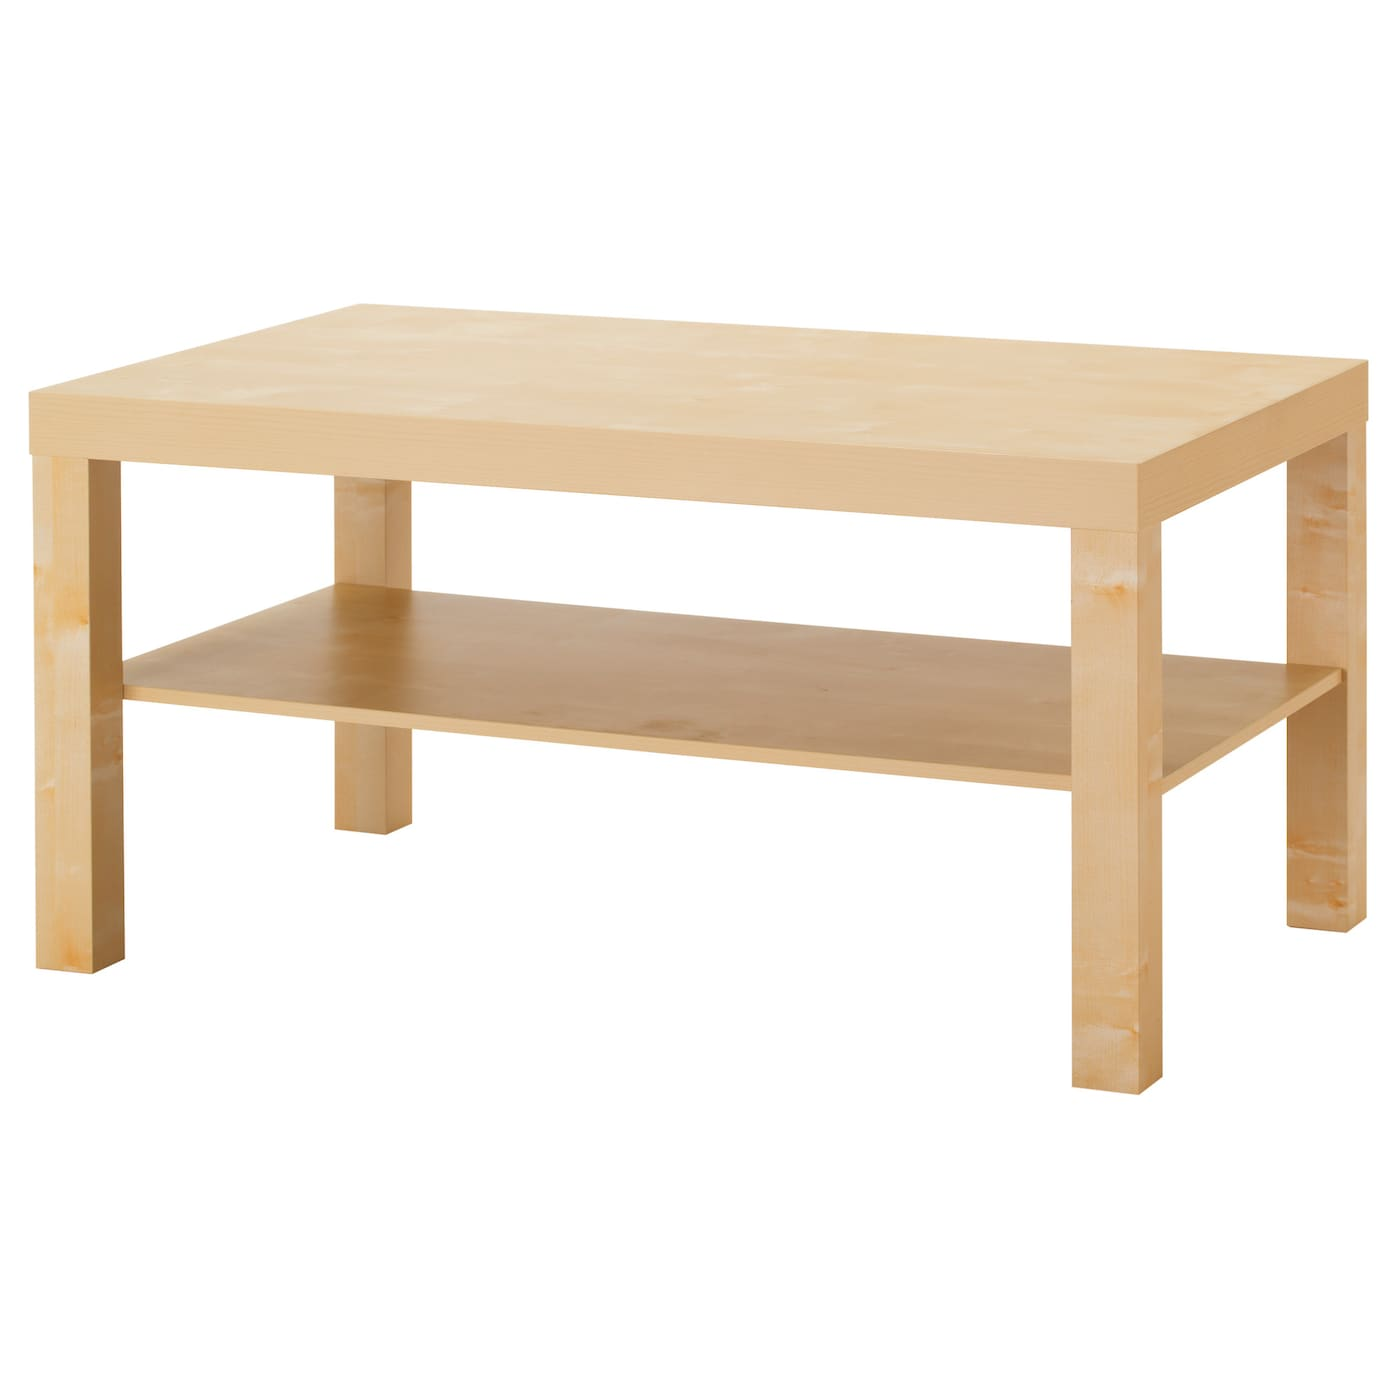 lack coffee table birch effect 90 x 55 cm ikea